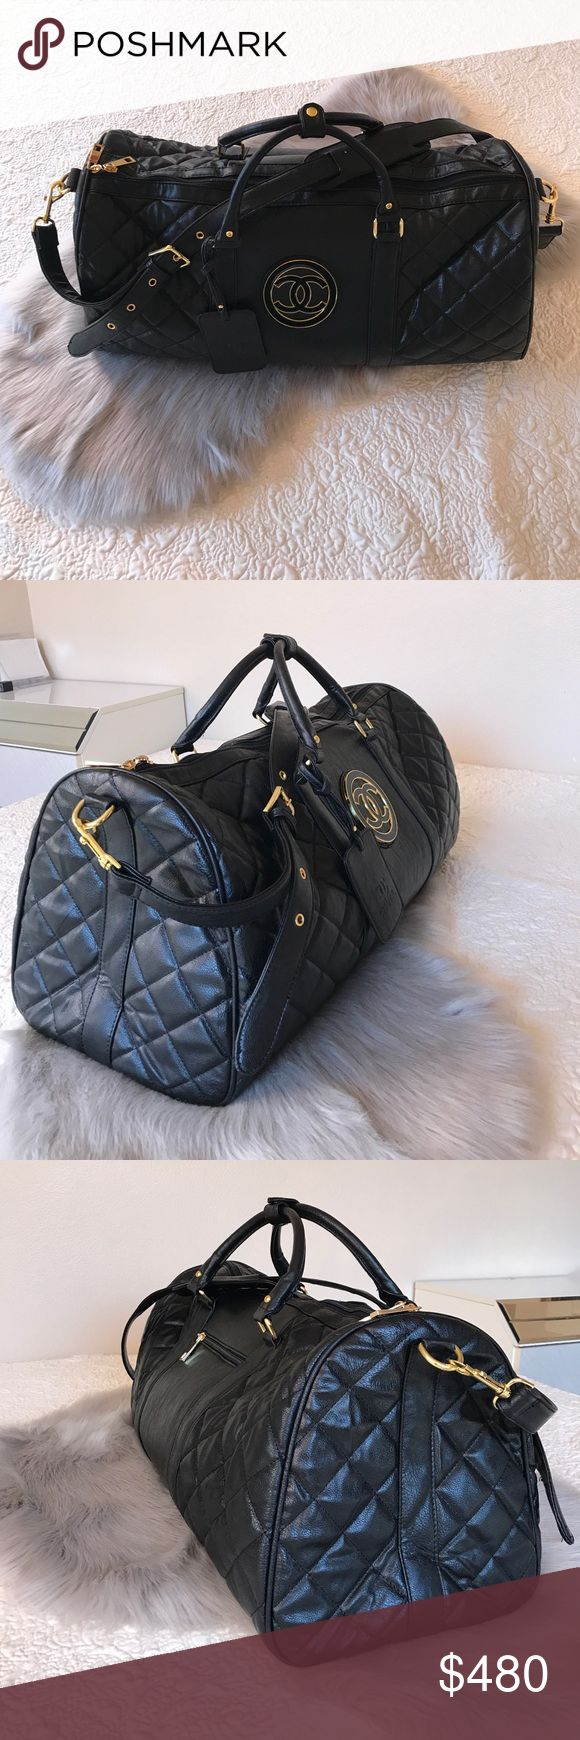 Chanel Vintage Duffle Bag (Size 60) Chanel Vintage Duffle Bag (Size 60)  -Very Rare Vintage Bag -Size 60 (Largest Carry On bag you can bring in the plane!)  -Still in Great Condition!  -Ship from Los Angeles, CA.  -Ship same or next business day! - No pricing discussions on comments below, ONLY submit offer.   Tags: Supreme Box Logo Shirt Hoodie Bape Chanel Louis Vuitton Vintage Tee Palace LV wallet Card Wallet Style Accessories Gucci Snake Belt Travel Passport Common Projects Goyard Duffle…